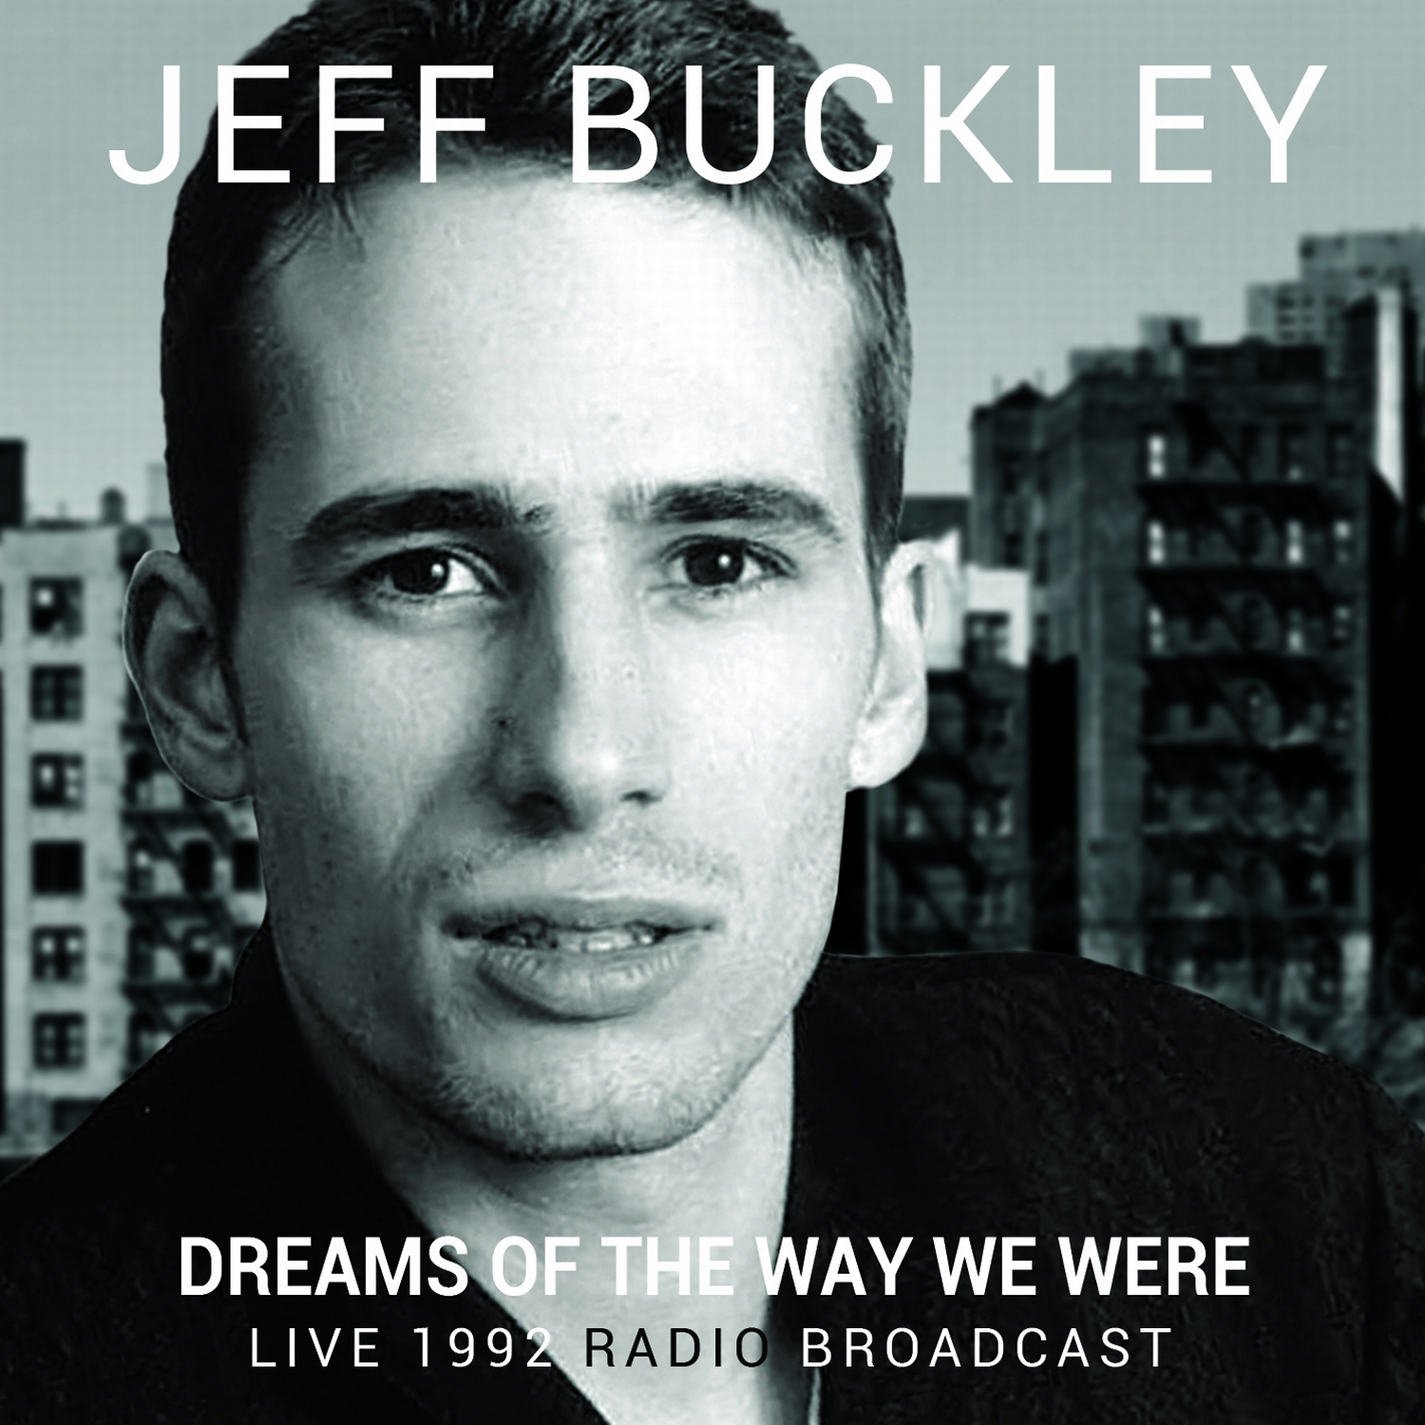 Jeff buckley + gay